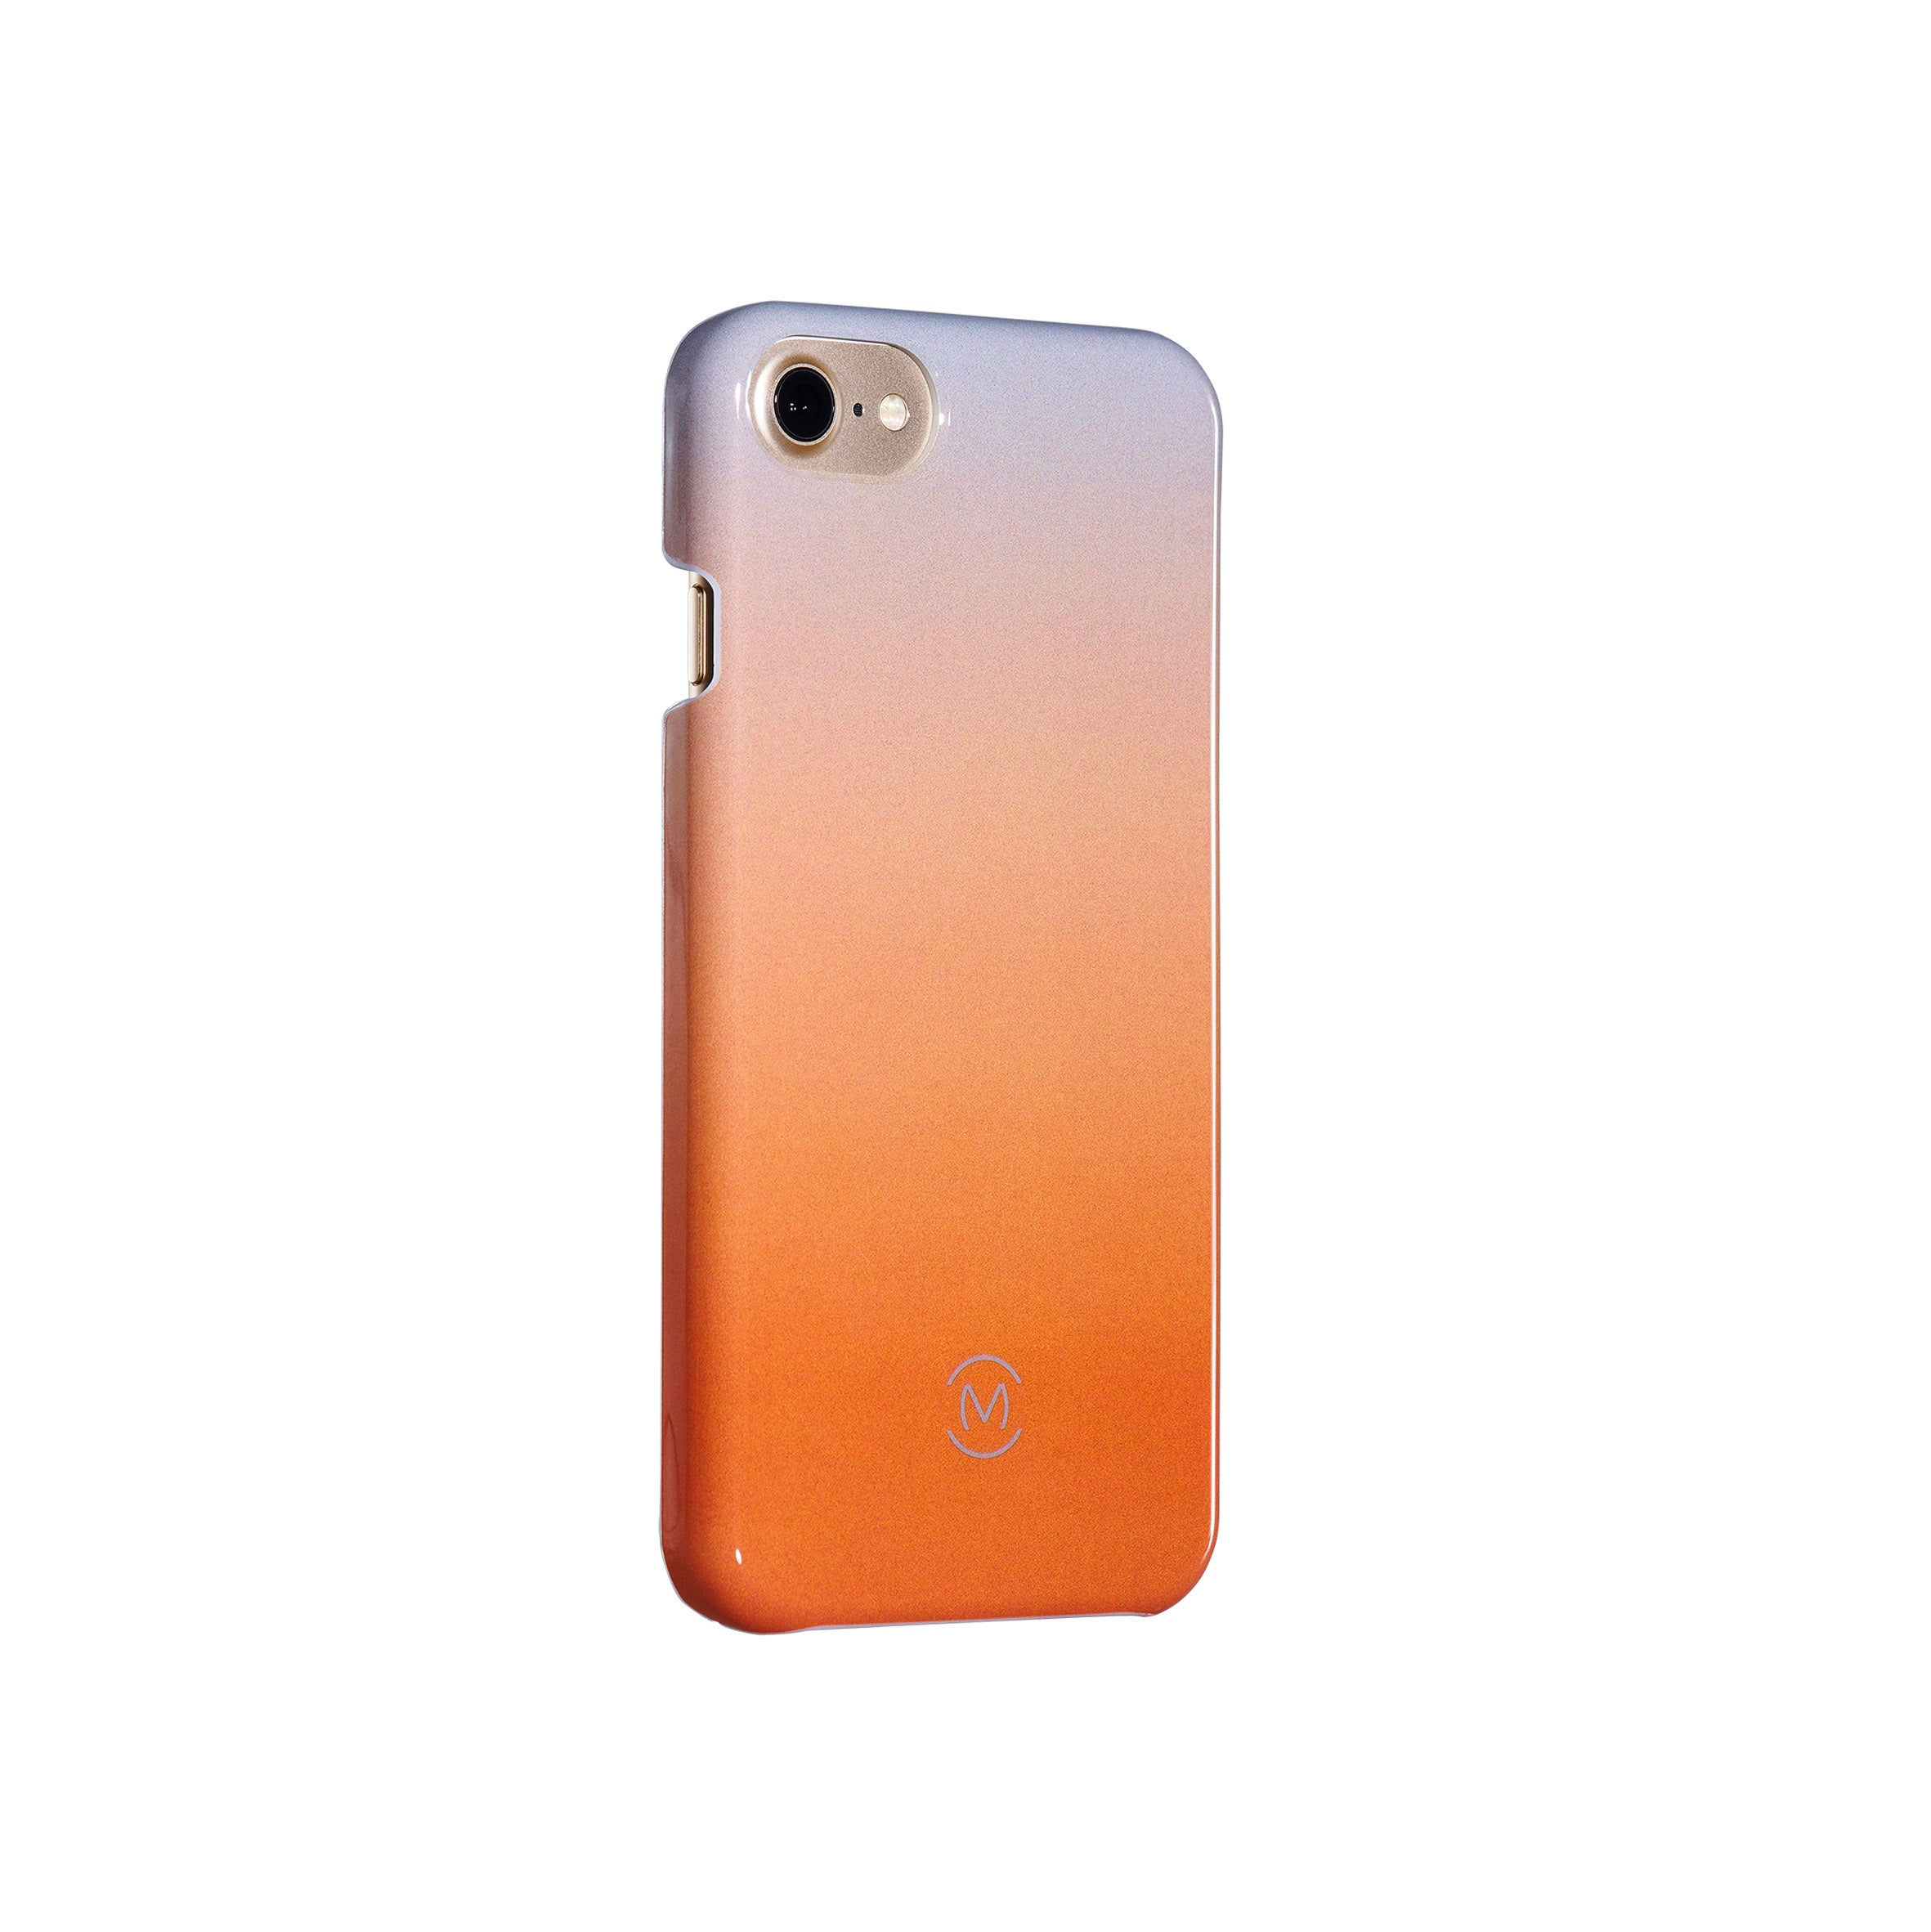 Gray-Orange Gradient Harvest Moon Recyclable Phone Case by Movement for iPhone 8, iPhone 7, iPhone 6s, and iPhone 6 (Left)